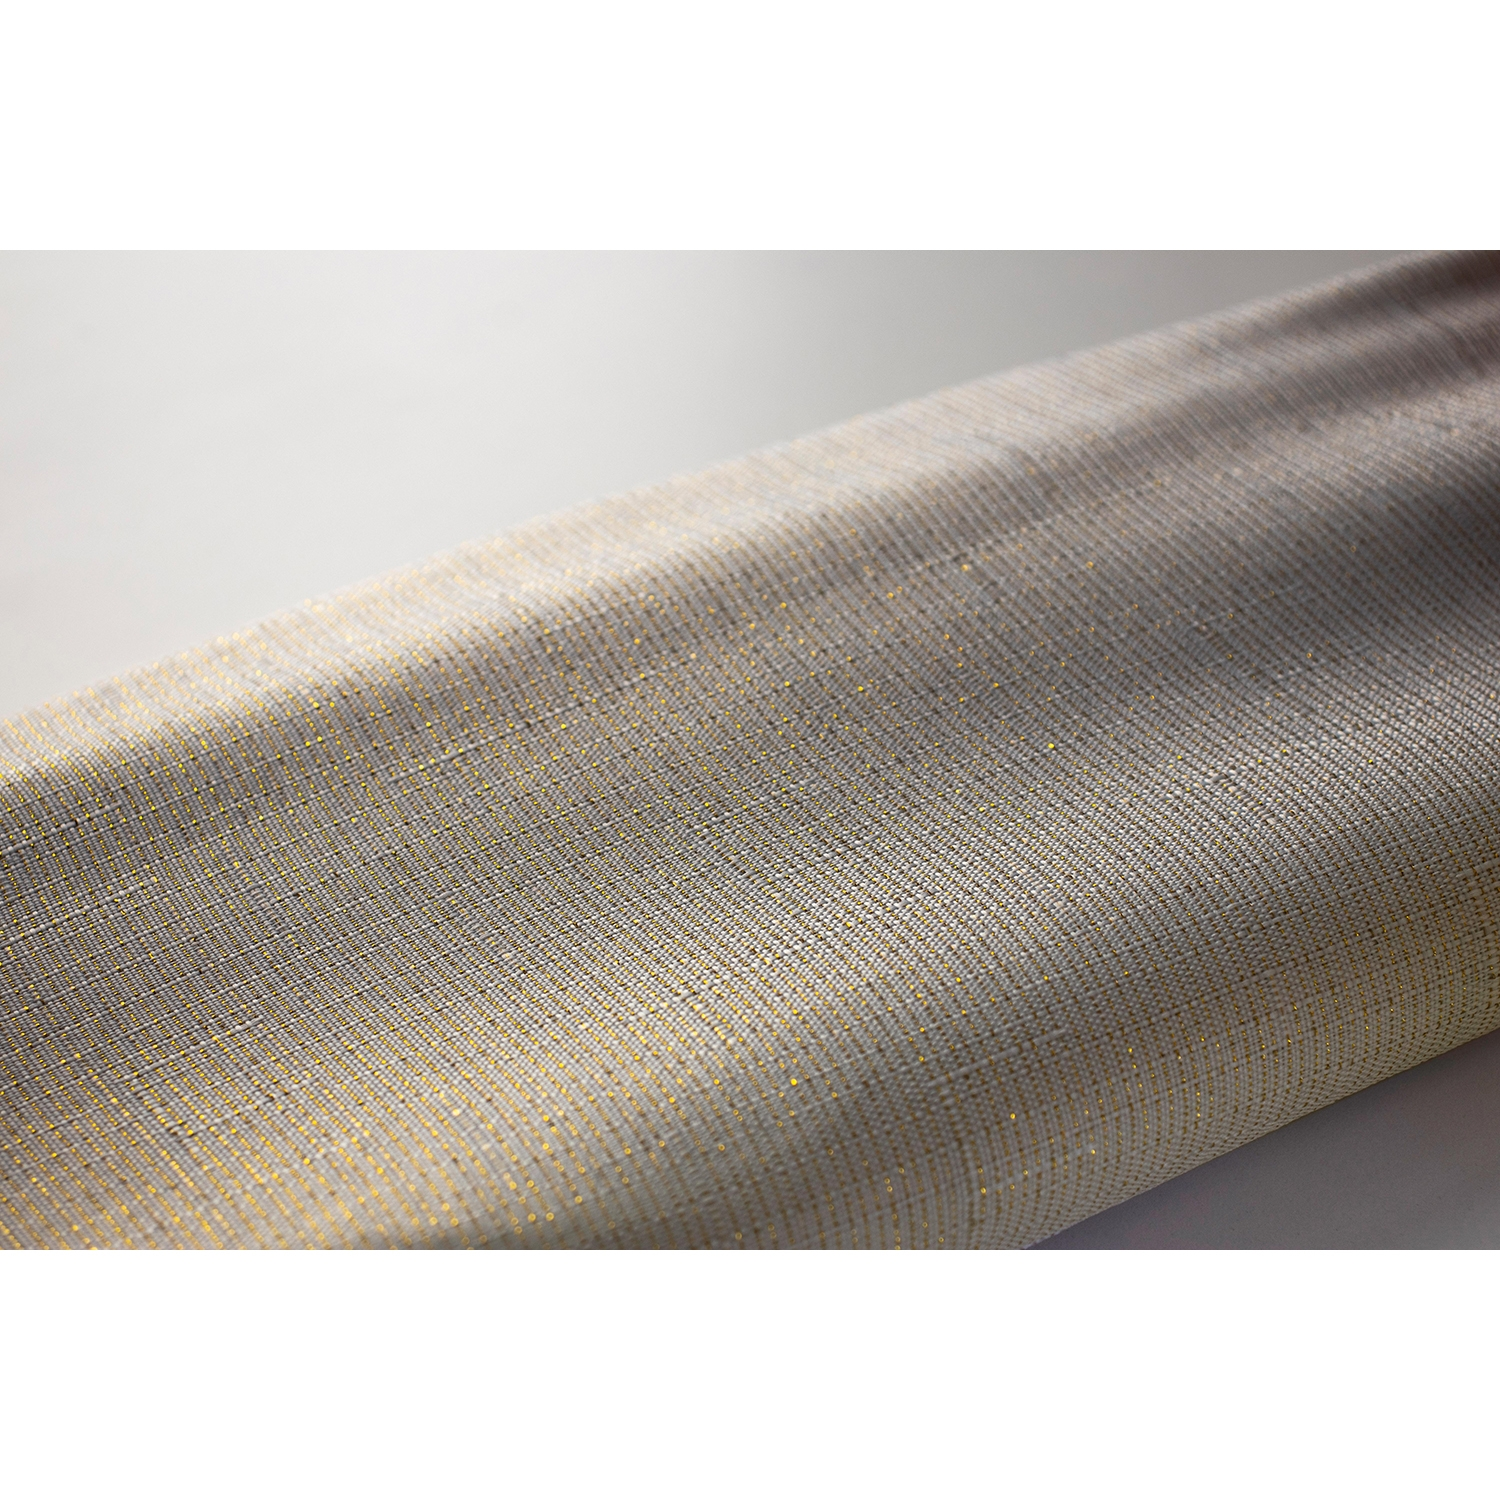 Image of Euroshowers, Gold Thread Shower Curtain, White